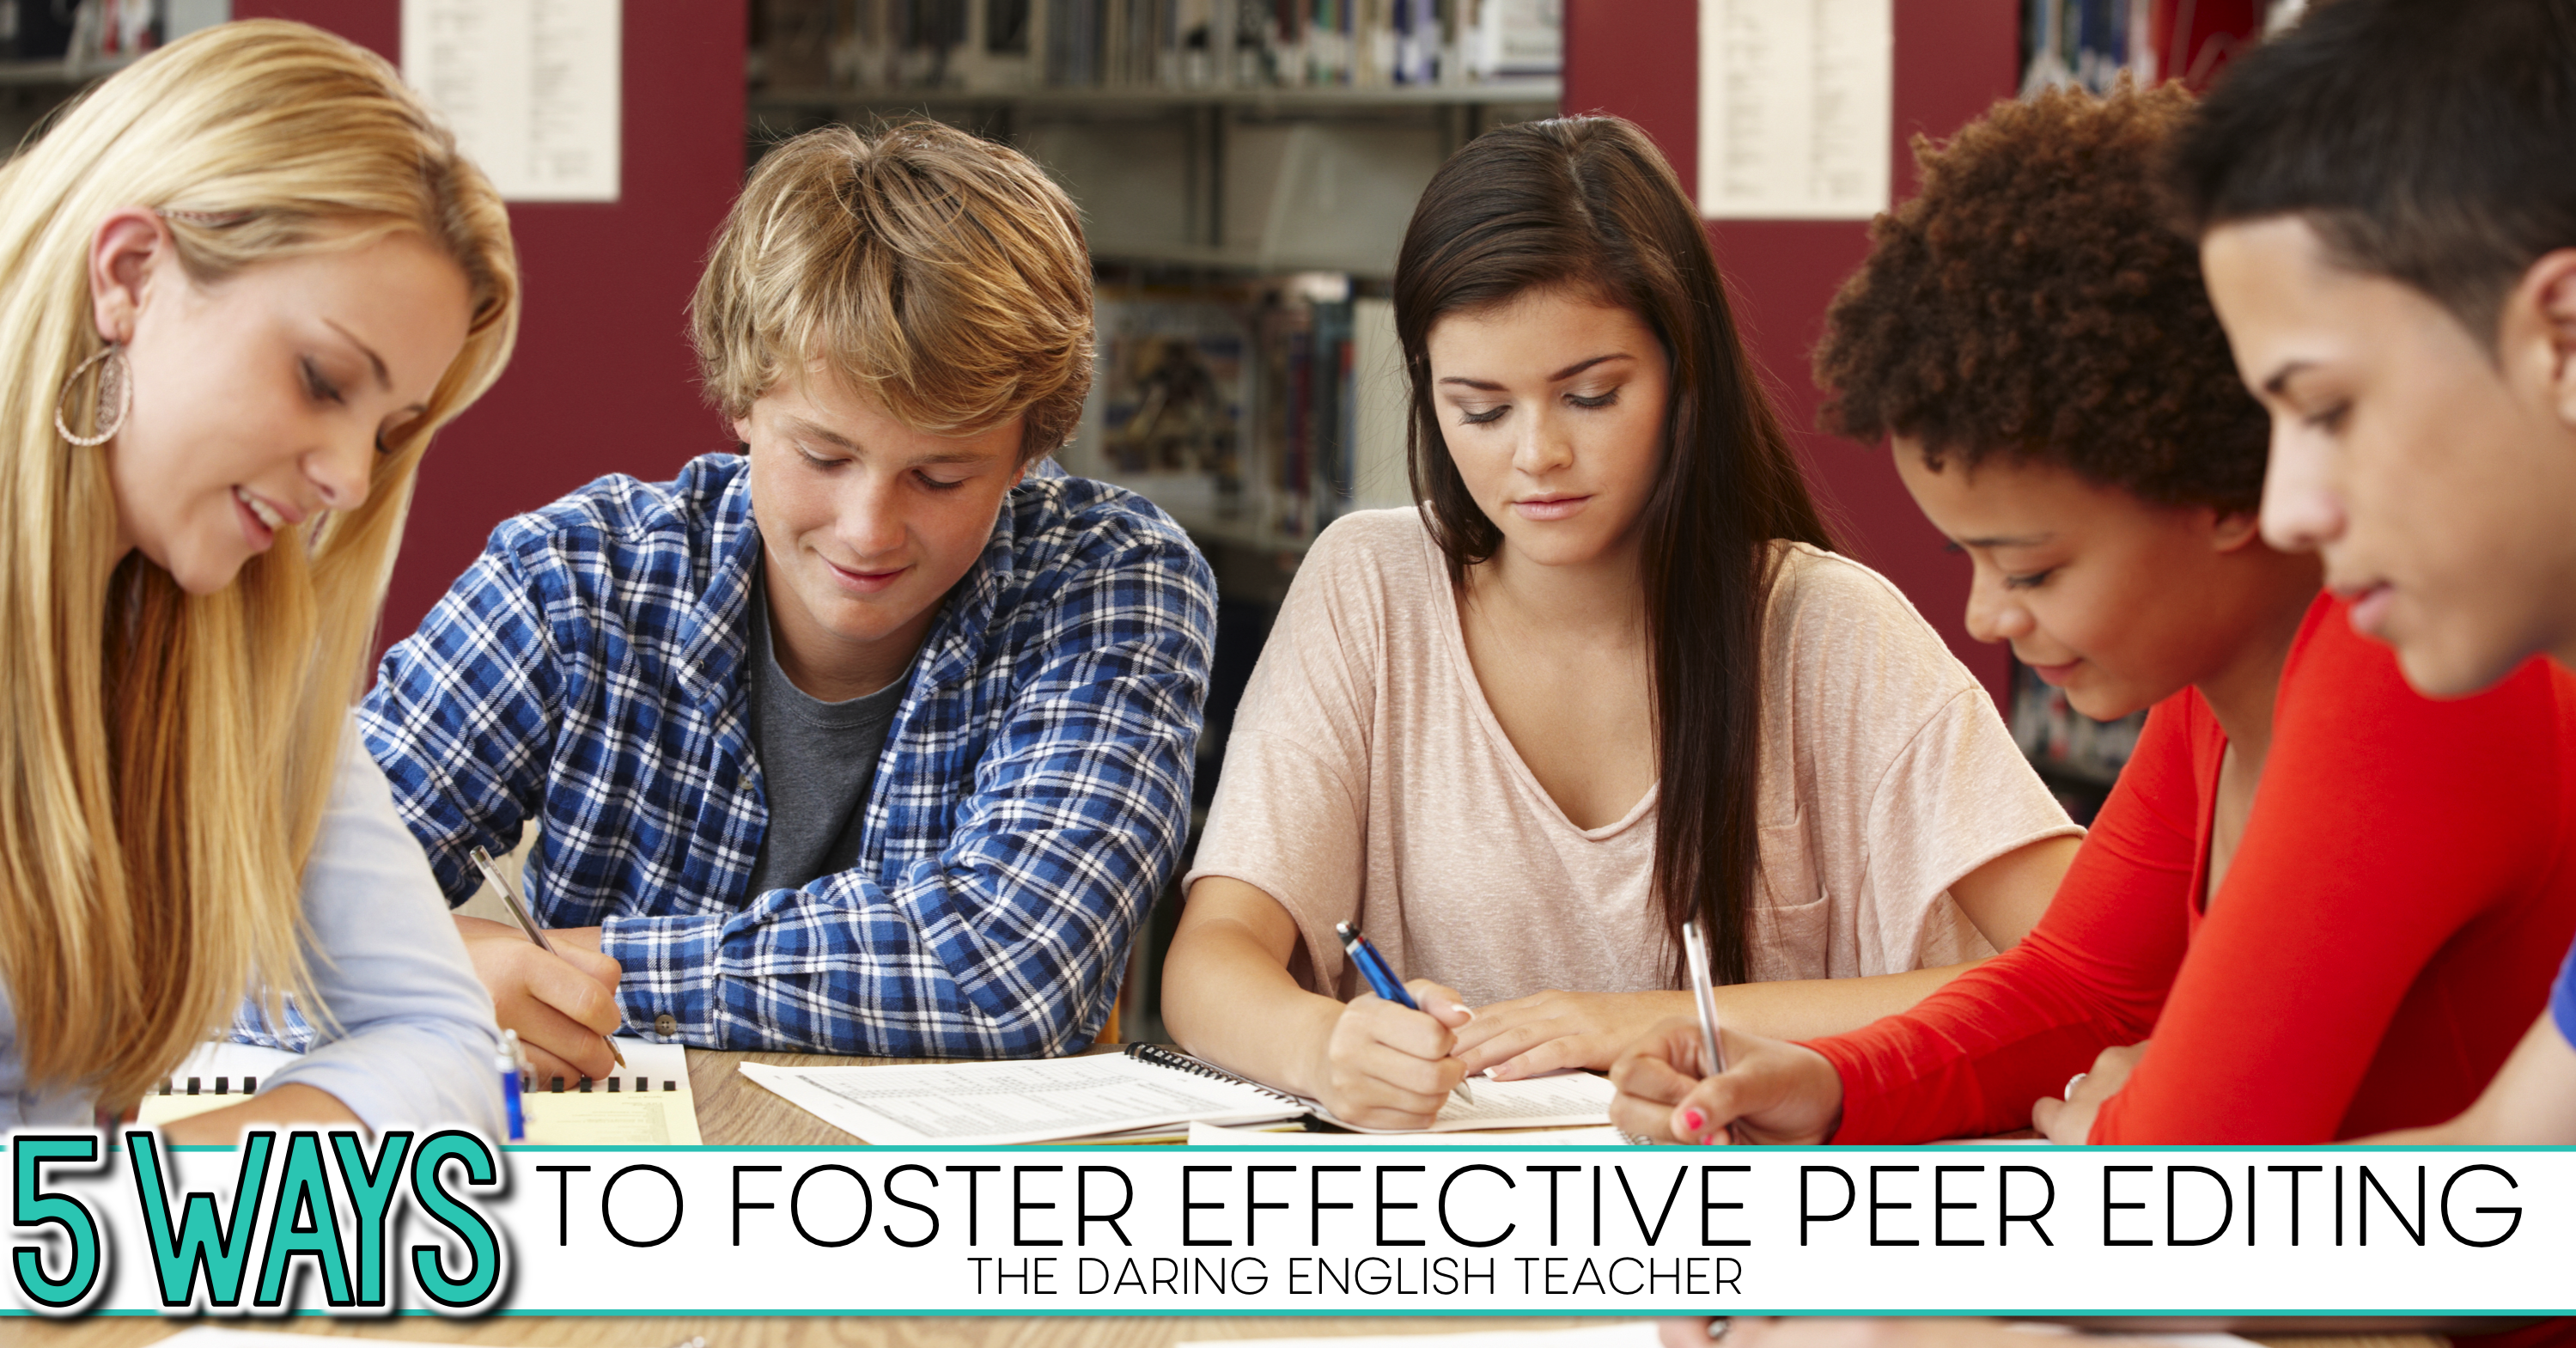 When it comes to peer editing, students need direction and focus. This post will give you five ways to make peer editing successful in your class.